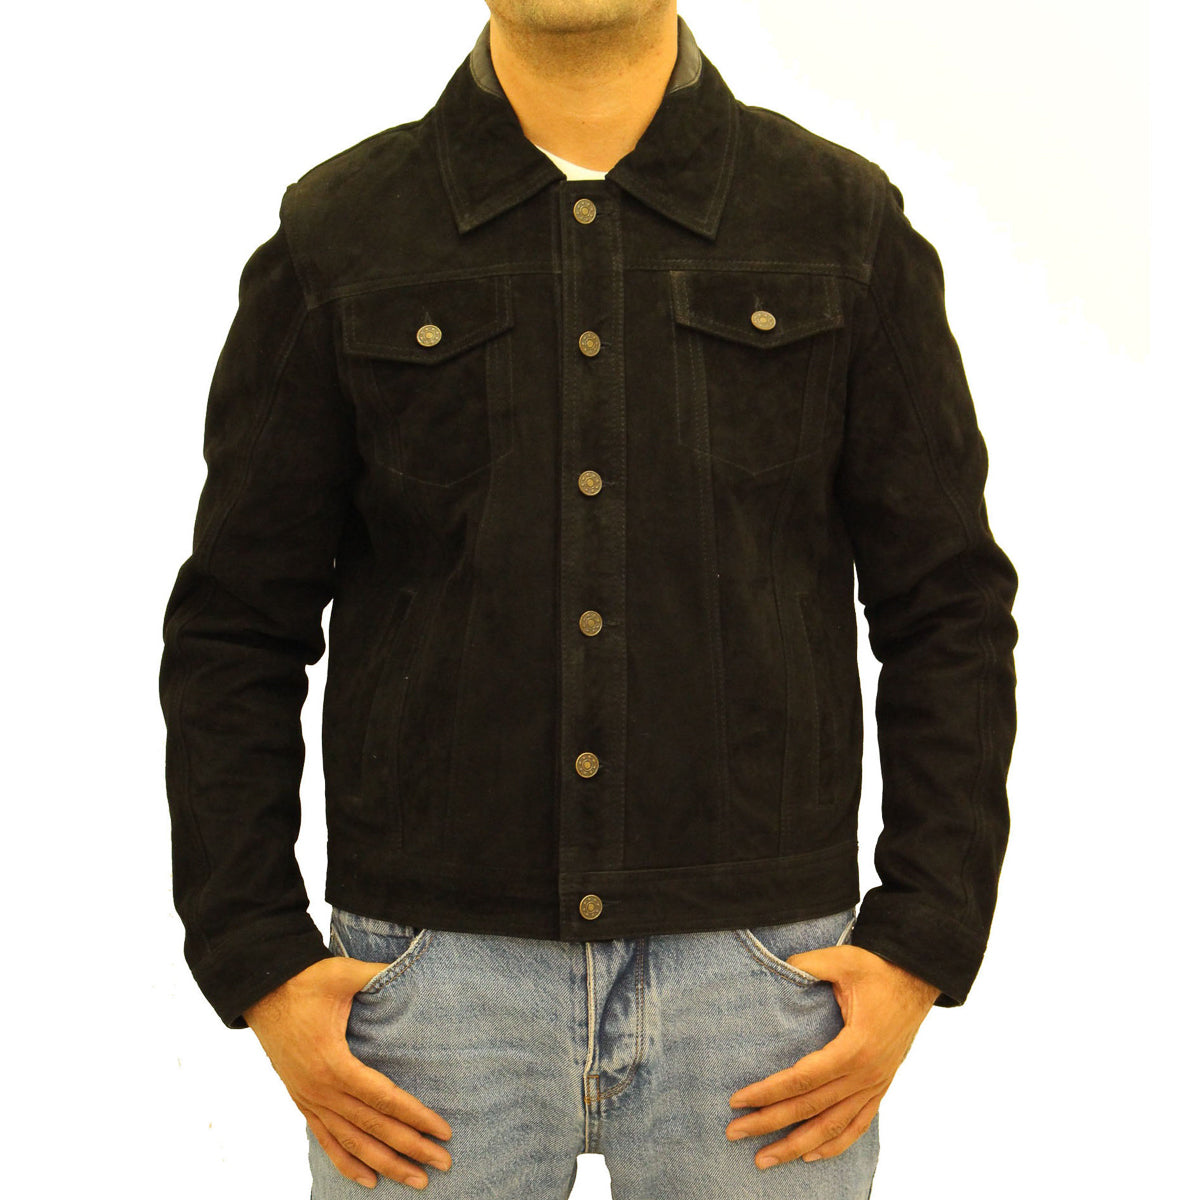 Mens suede smart casual denim jeans style trucker jacket.